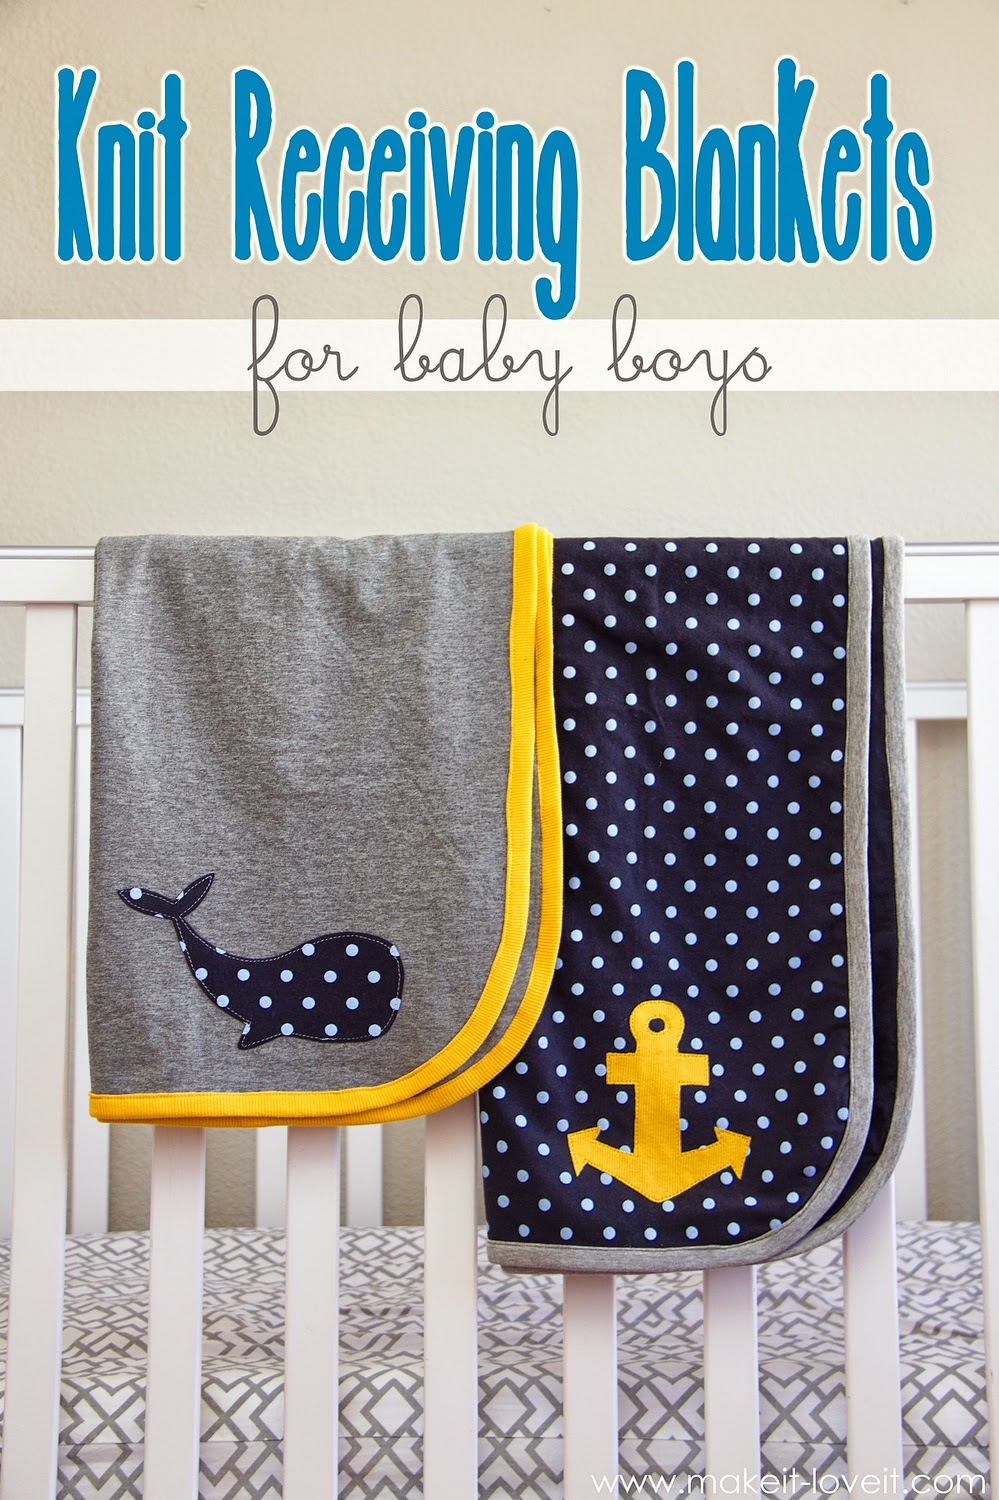 Tutorials for Baby blankets